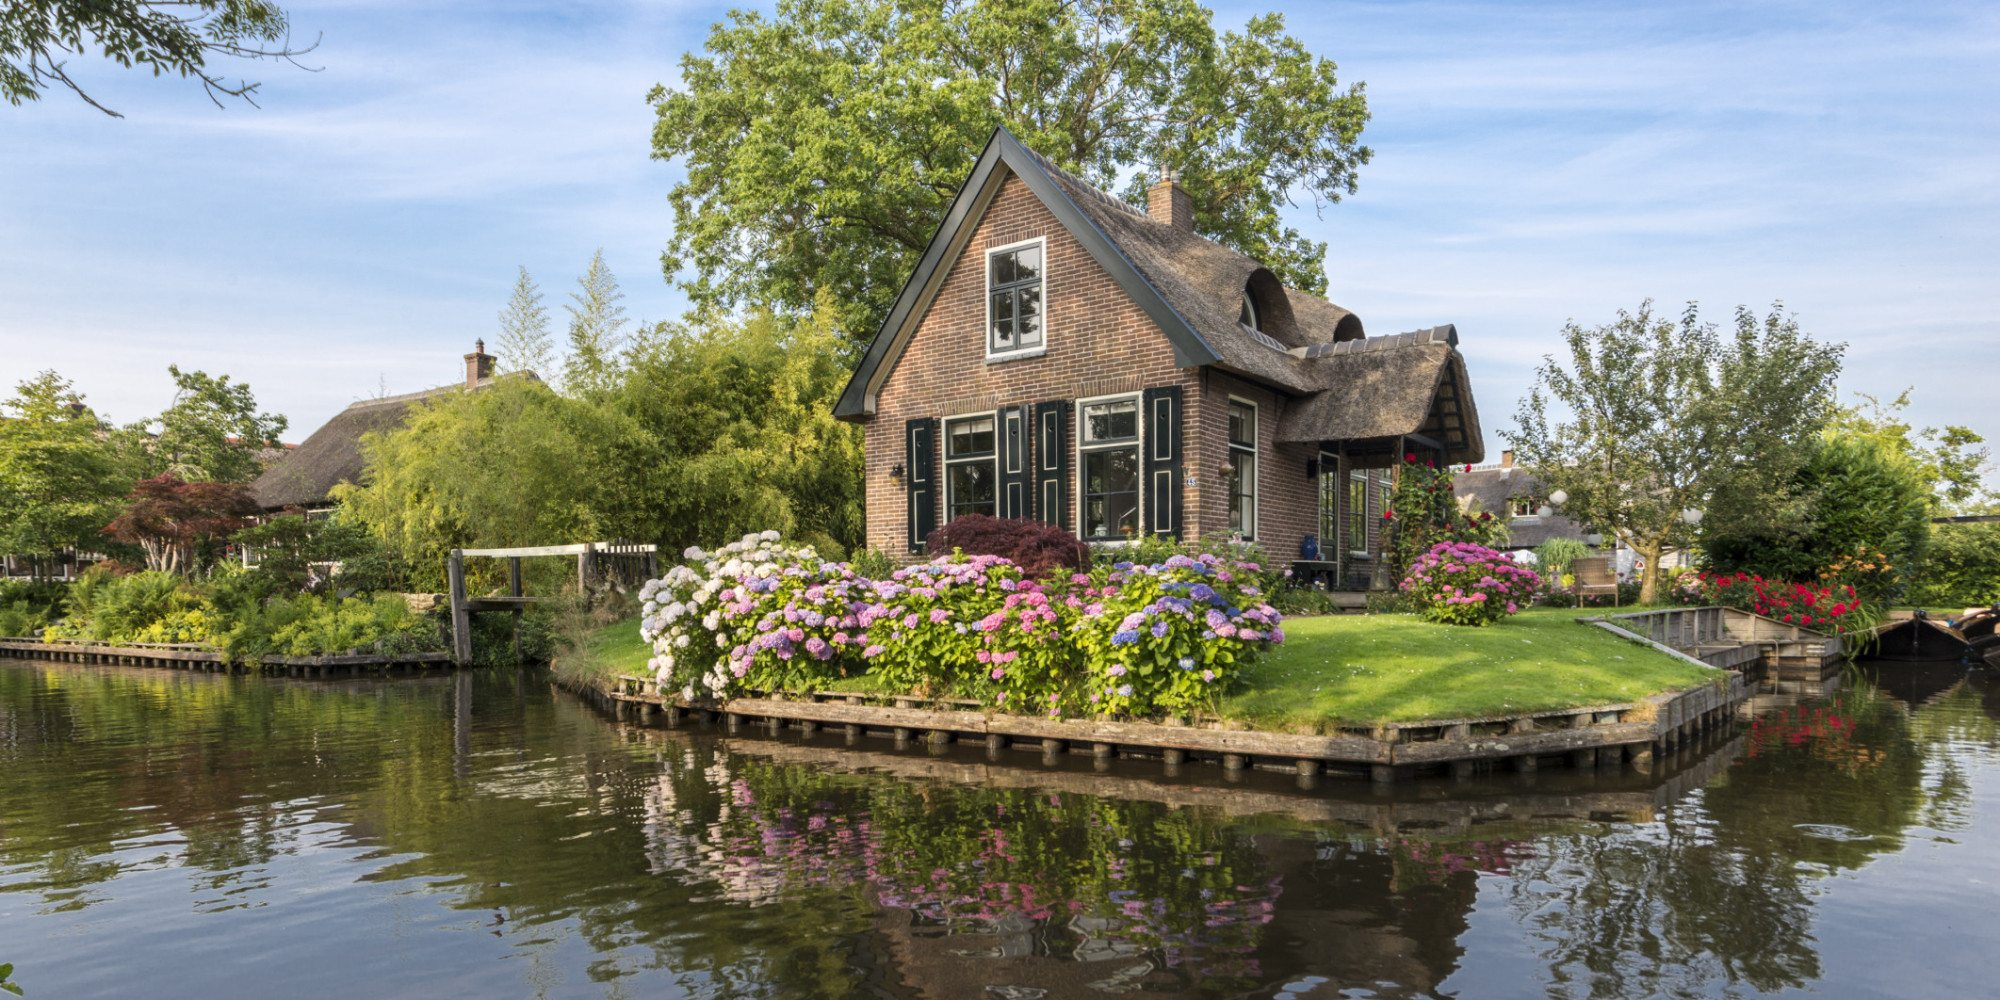 Giethoorn - Facts About